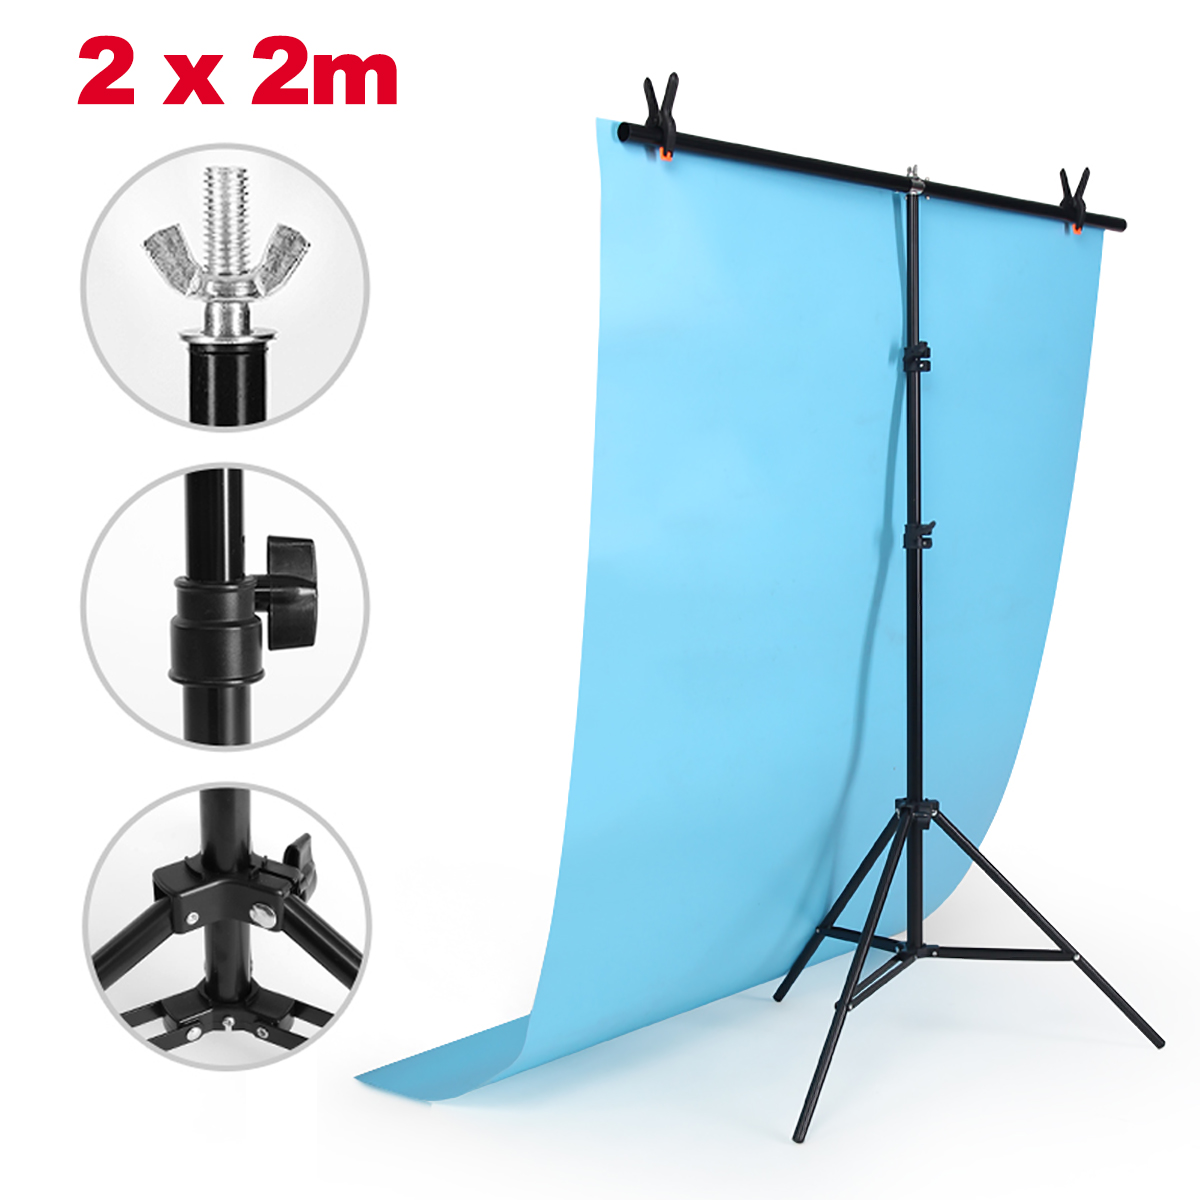 6.6ft x 6.6ft  T-type Adjustable Background Support Stand Holder Photo Video Backdrop Kit Photography